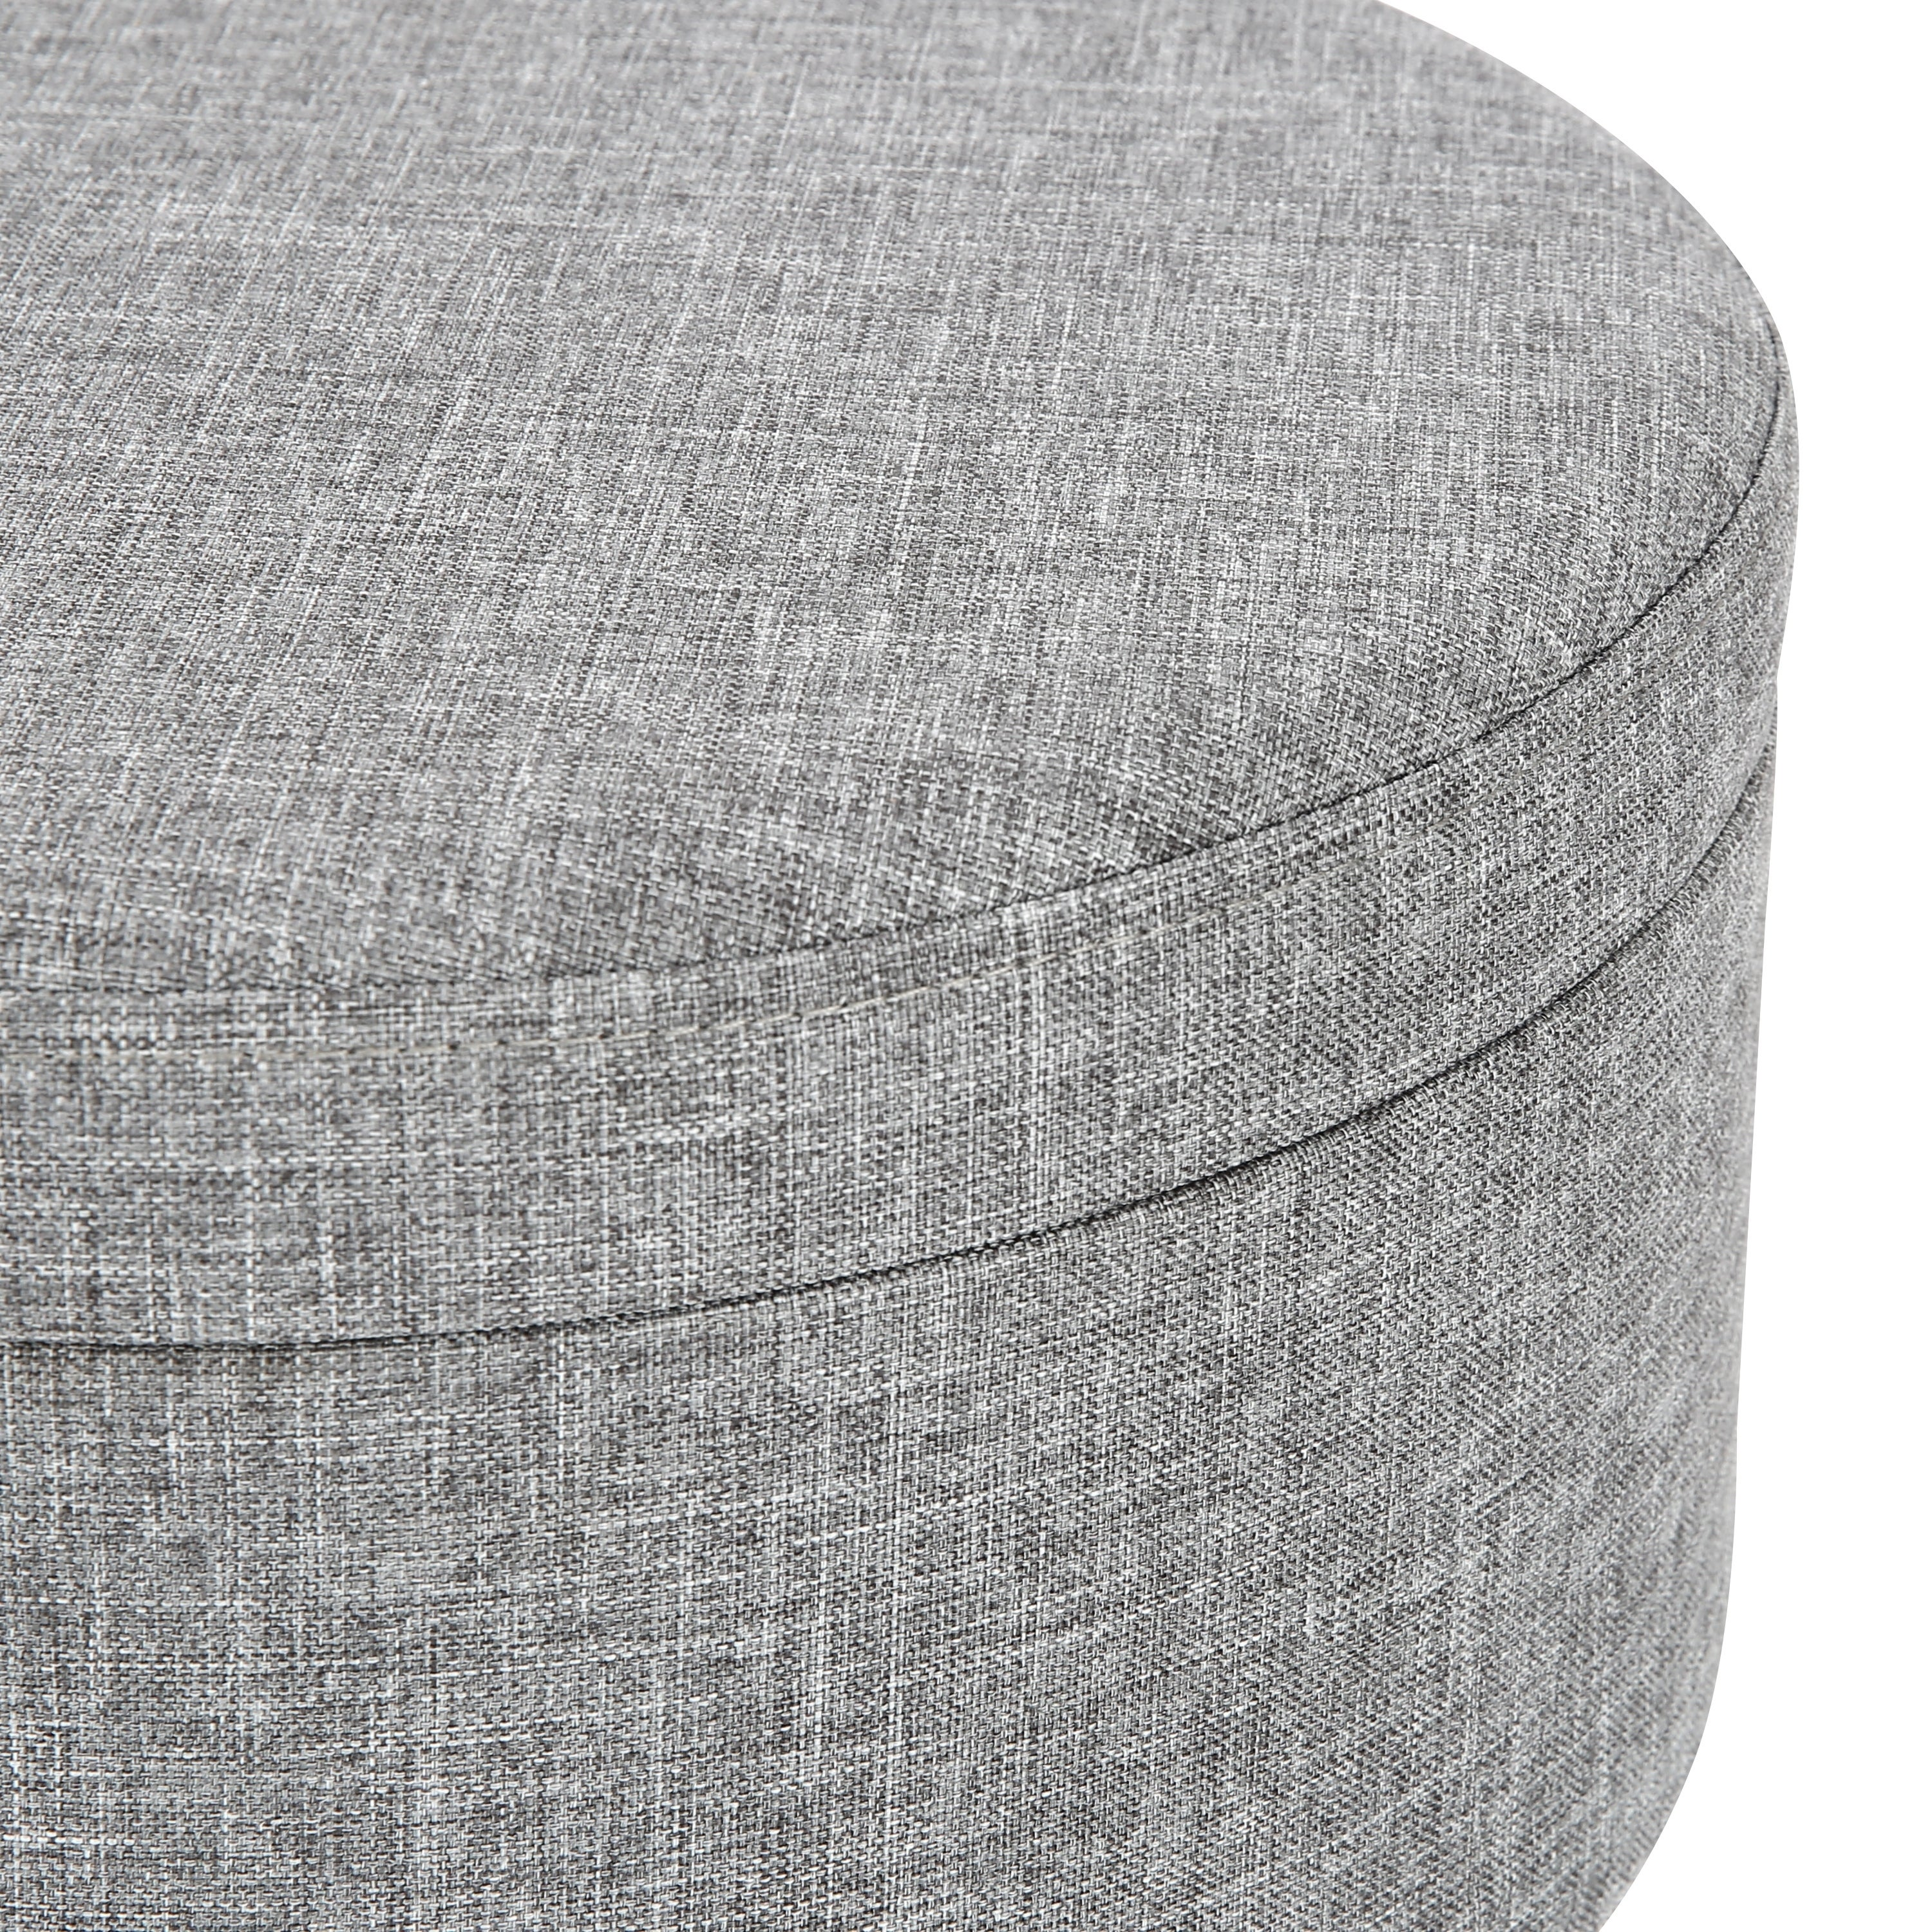 Amazing Poly And Bark Hattie Small Round Storage Stool Short Links Chair Design For Home Short Linksinfo